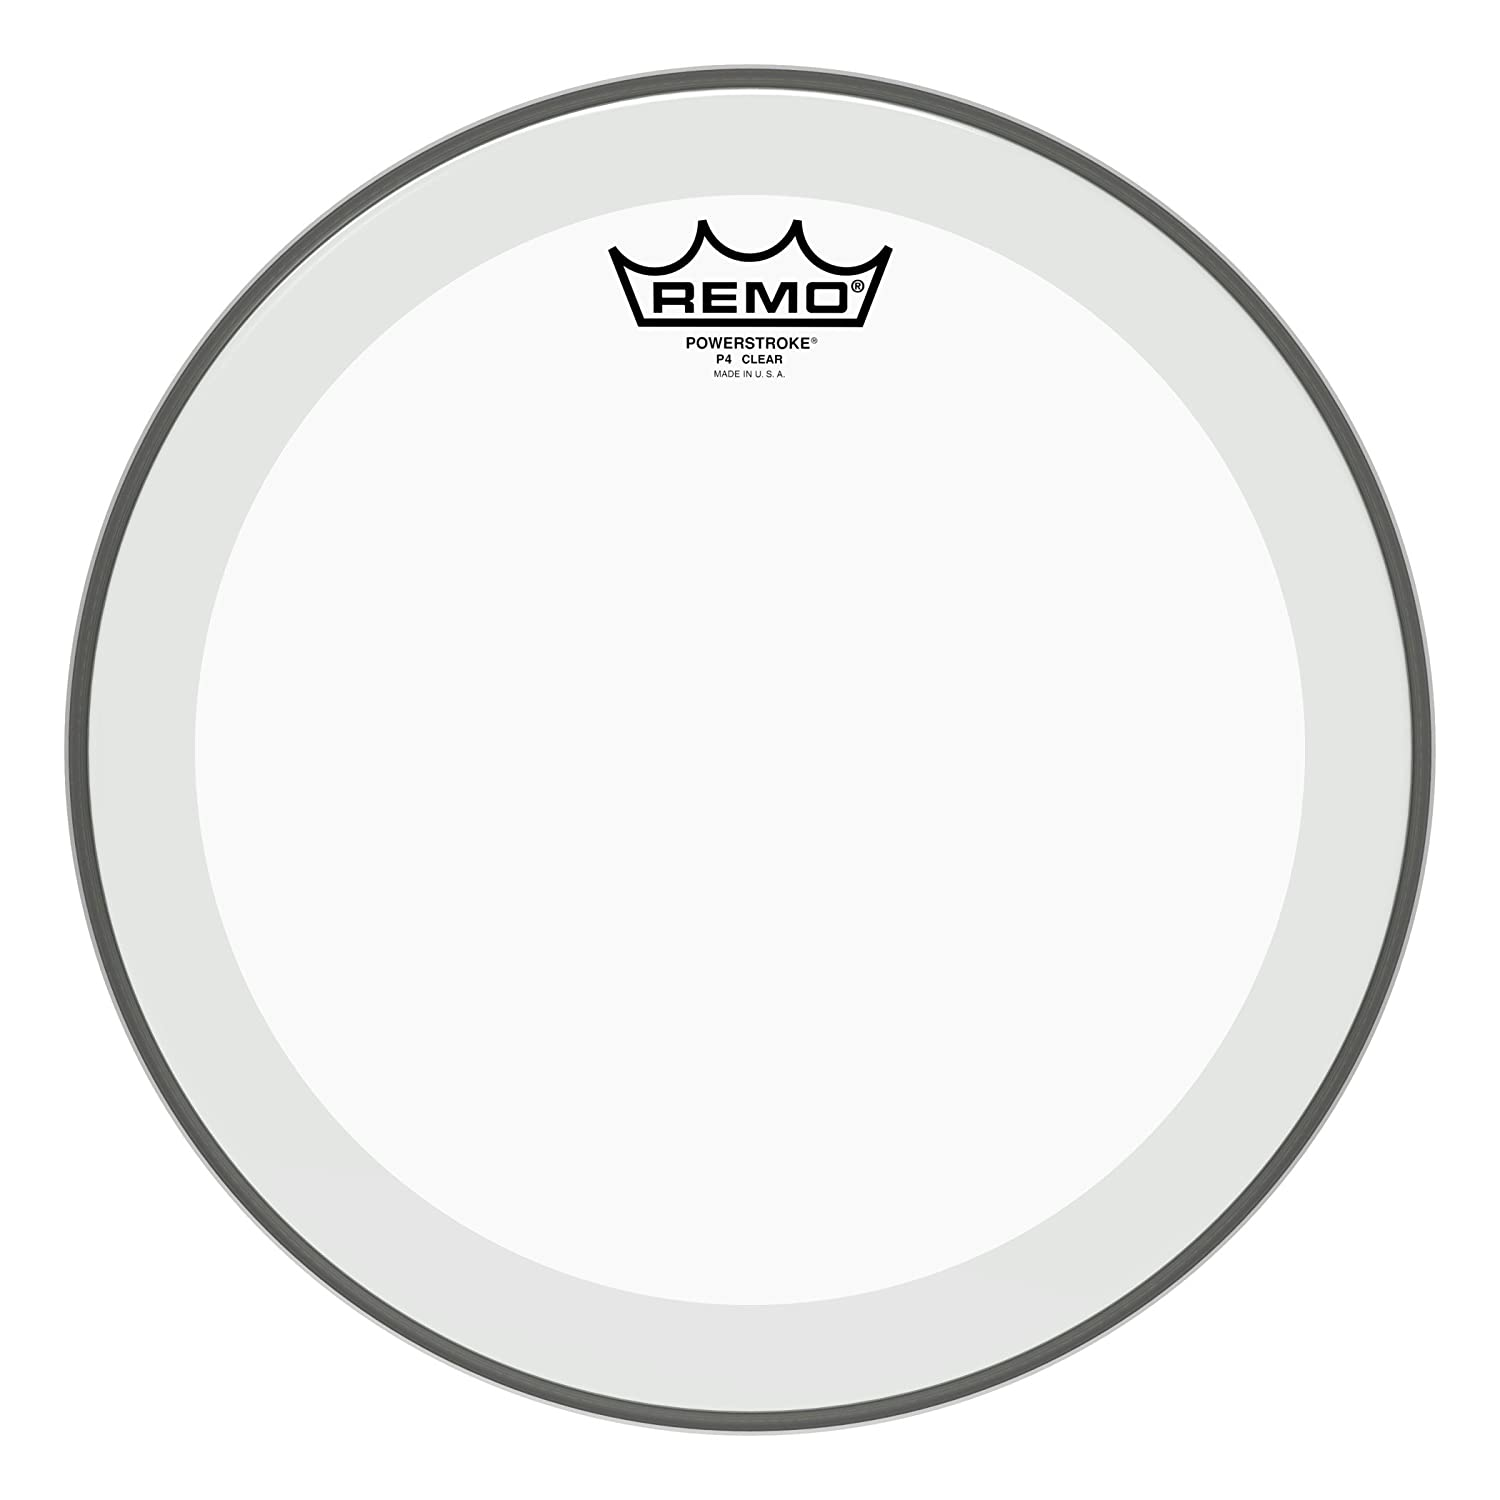 "Remo Batter, POWERSTROKE 4, Clear, 12"" Diameter 710bUWq-uTL"